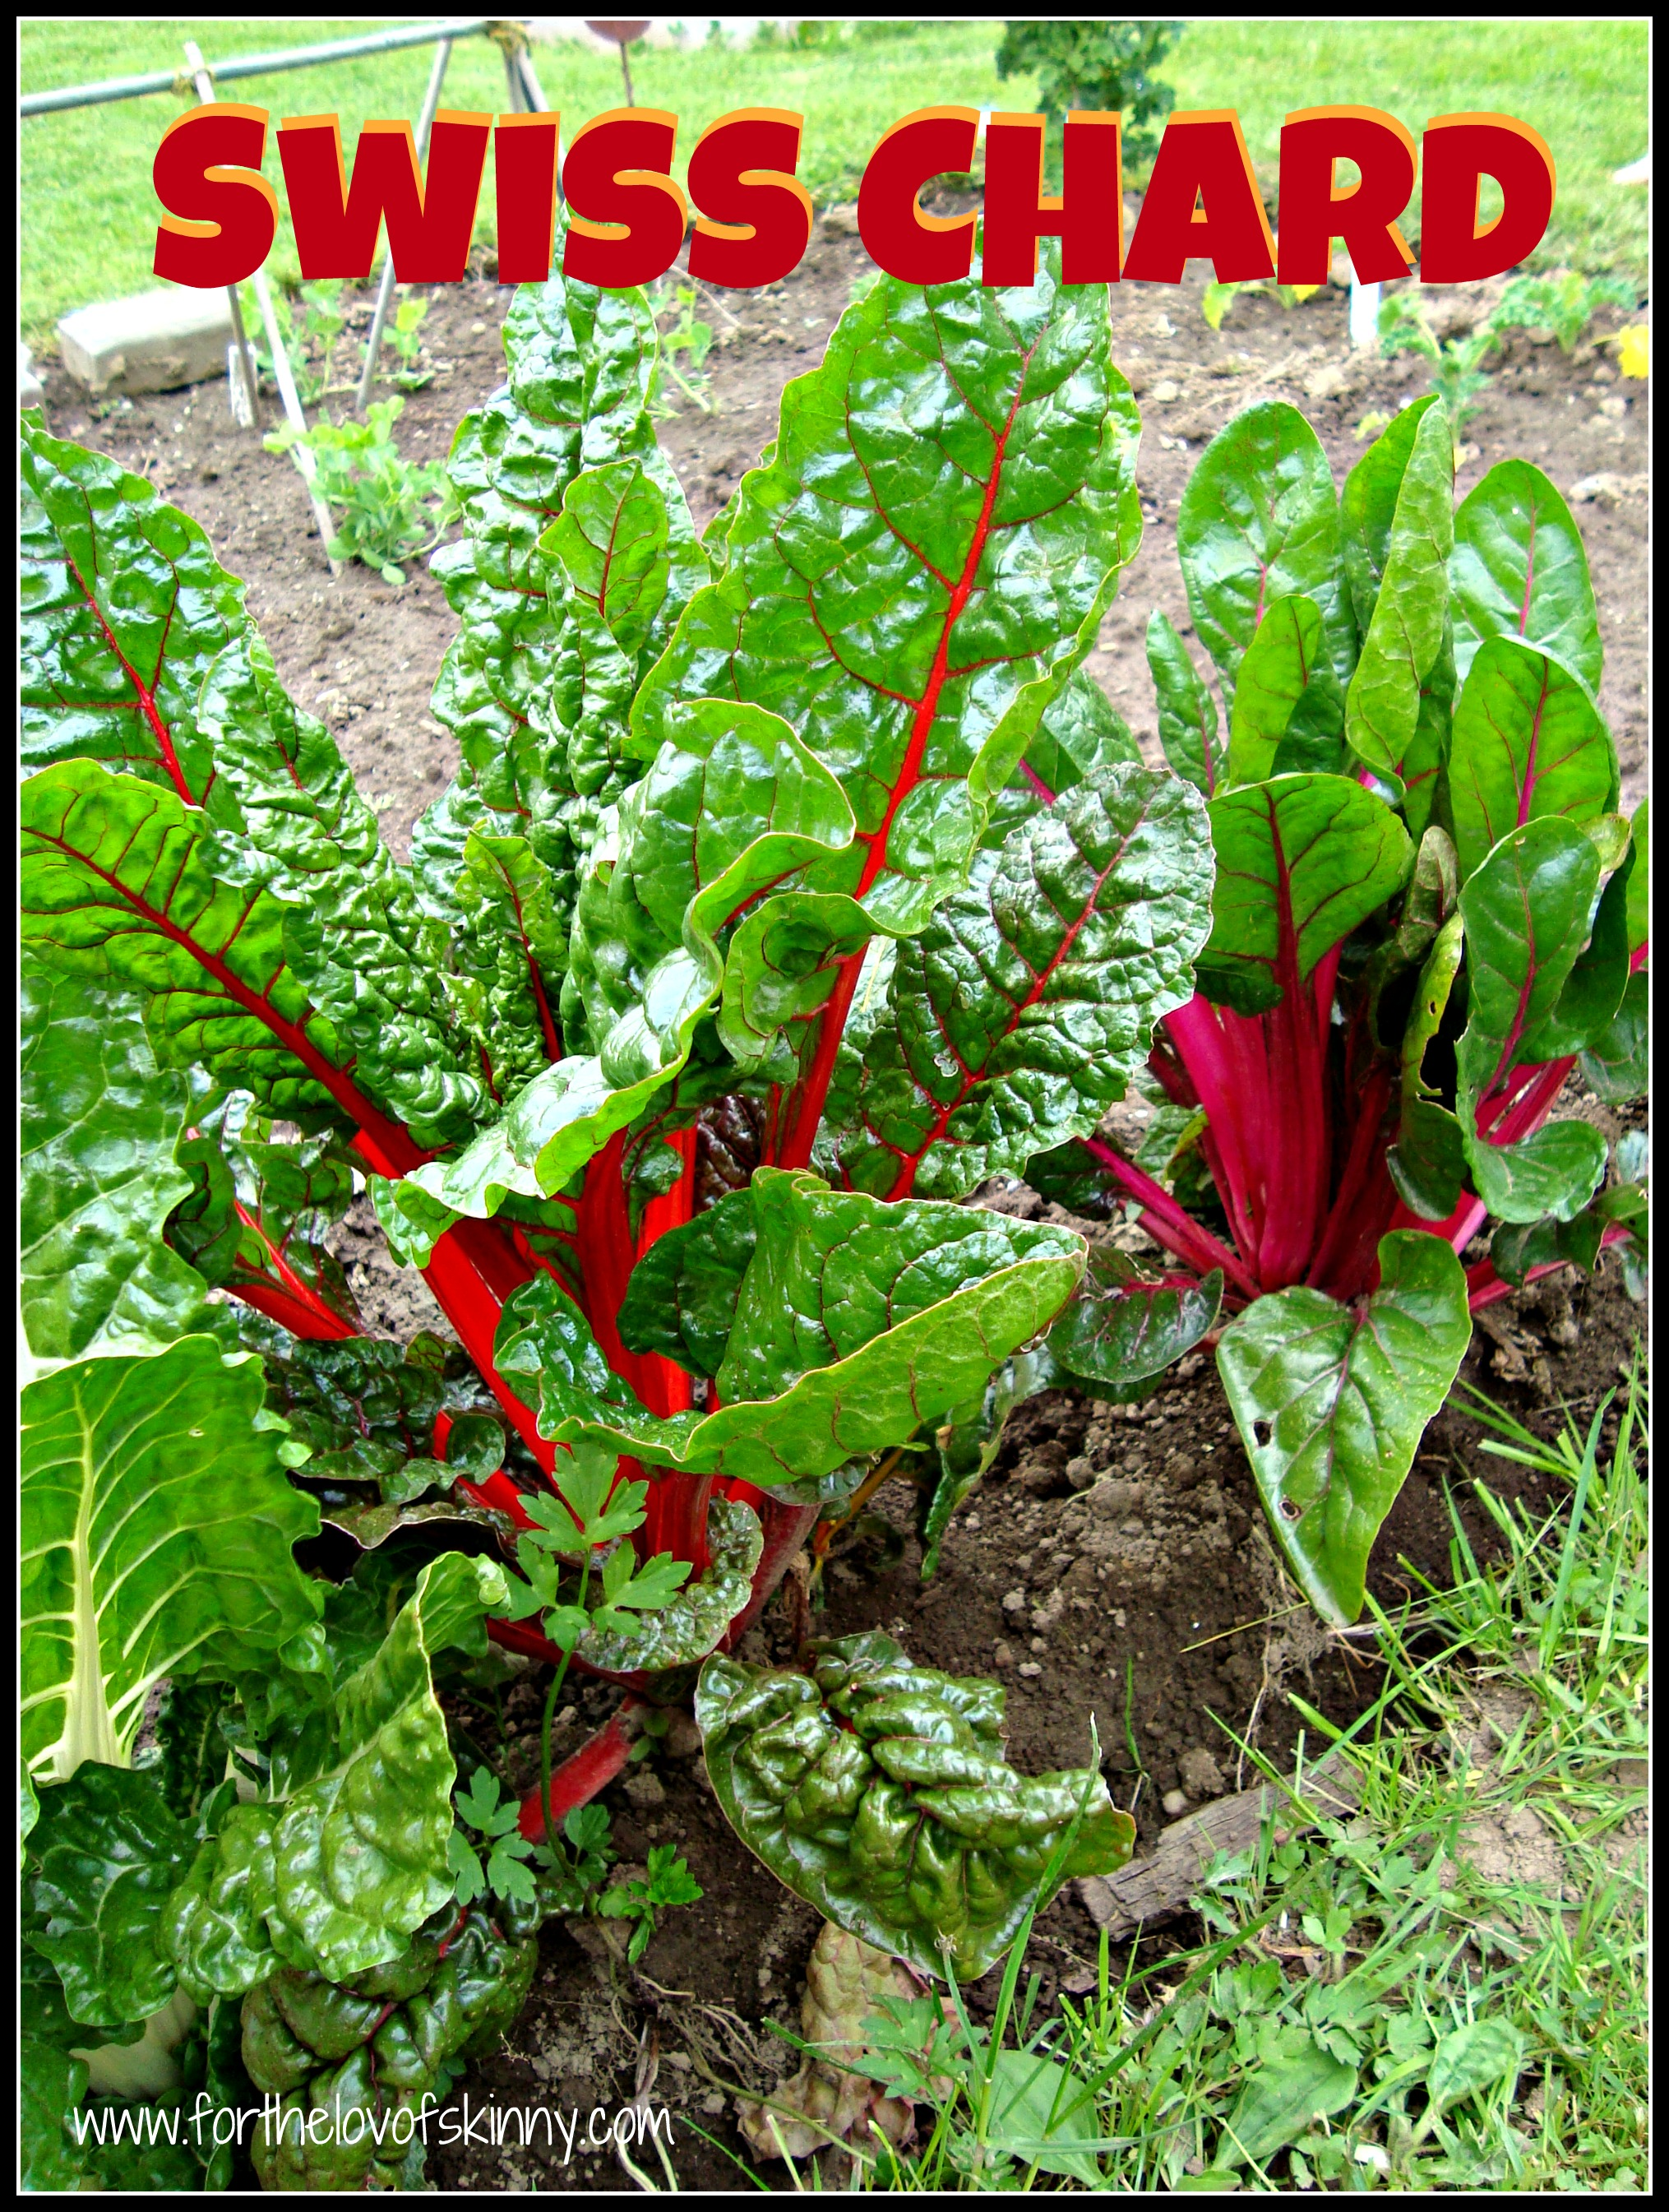 Swiss Chard Year 2 | The Family Chapters